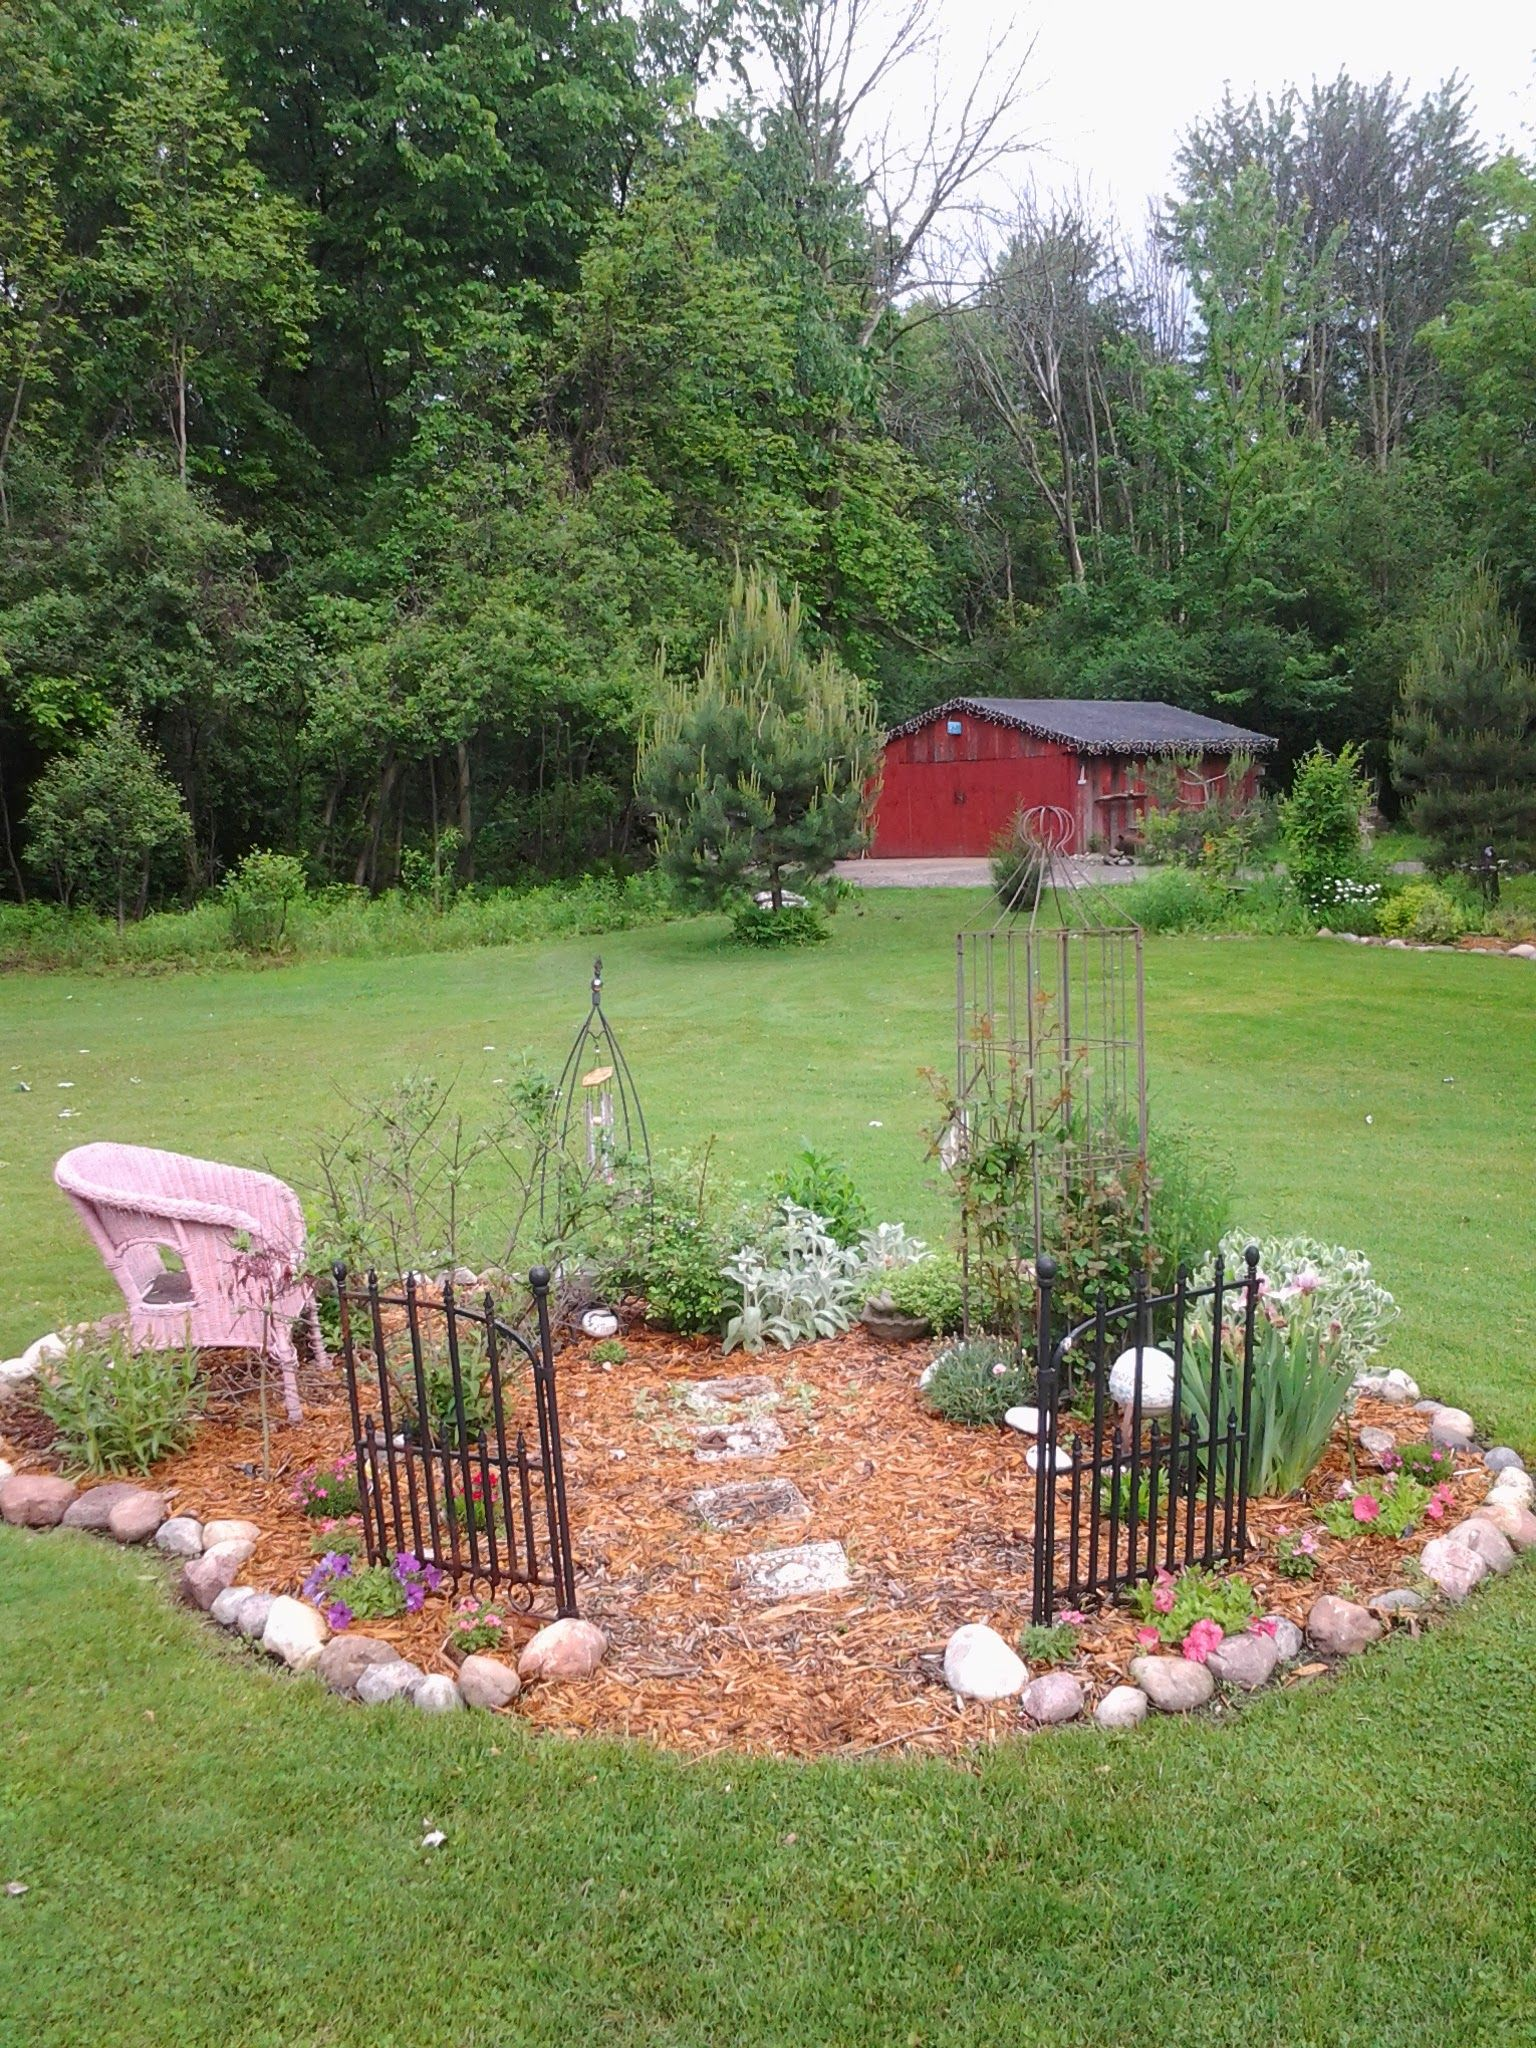 Memory garden of my daughter  | My garden | Small memorial garden